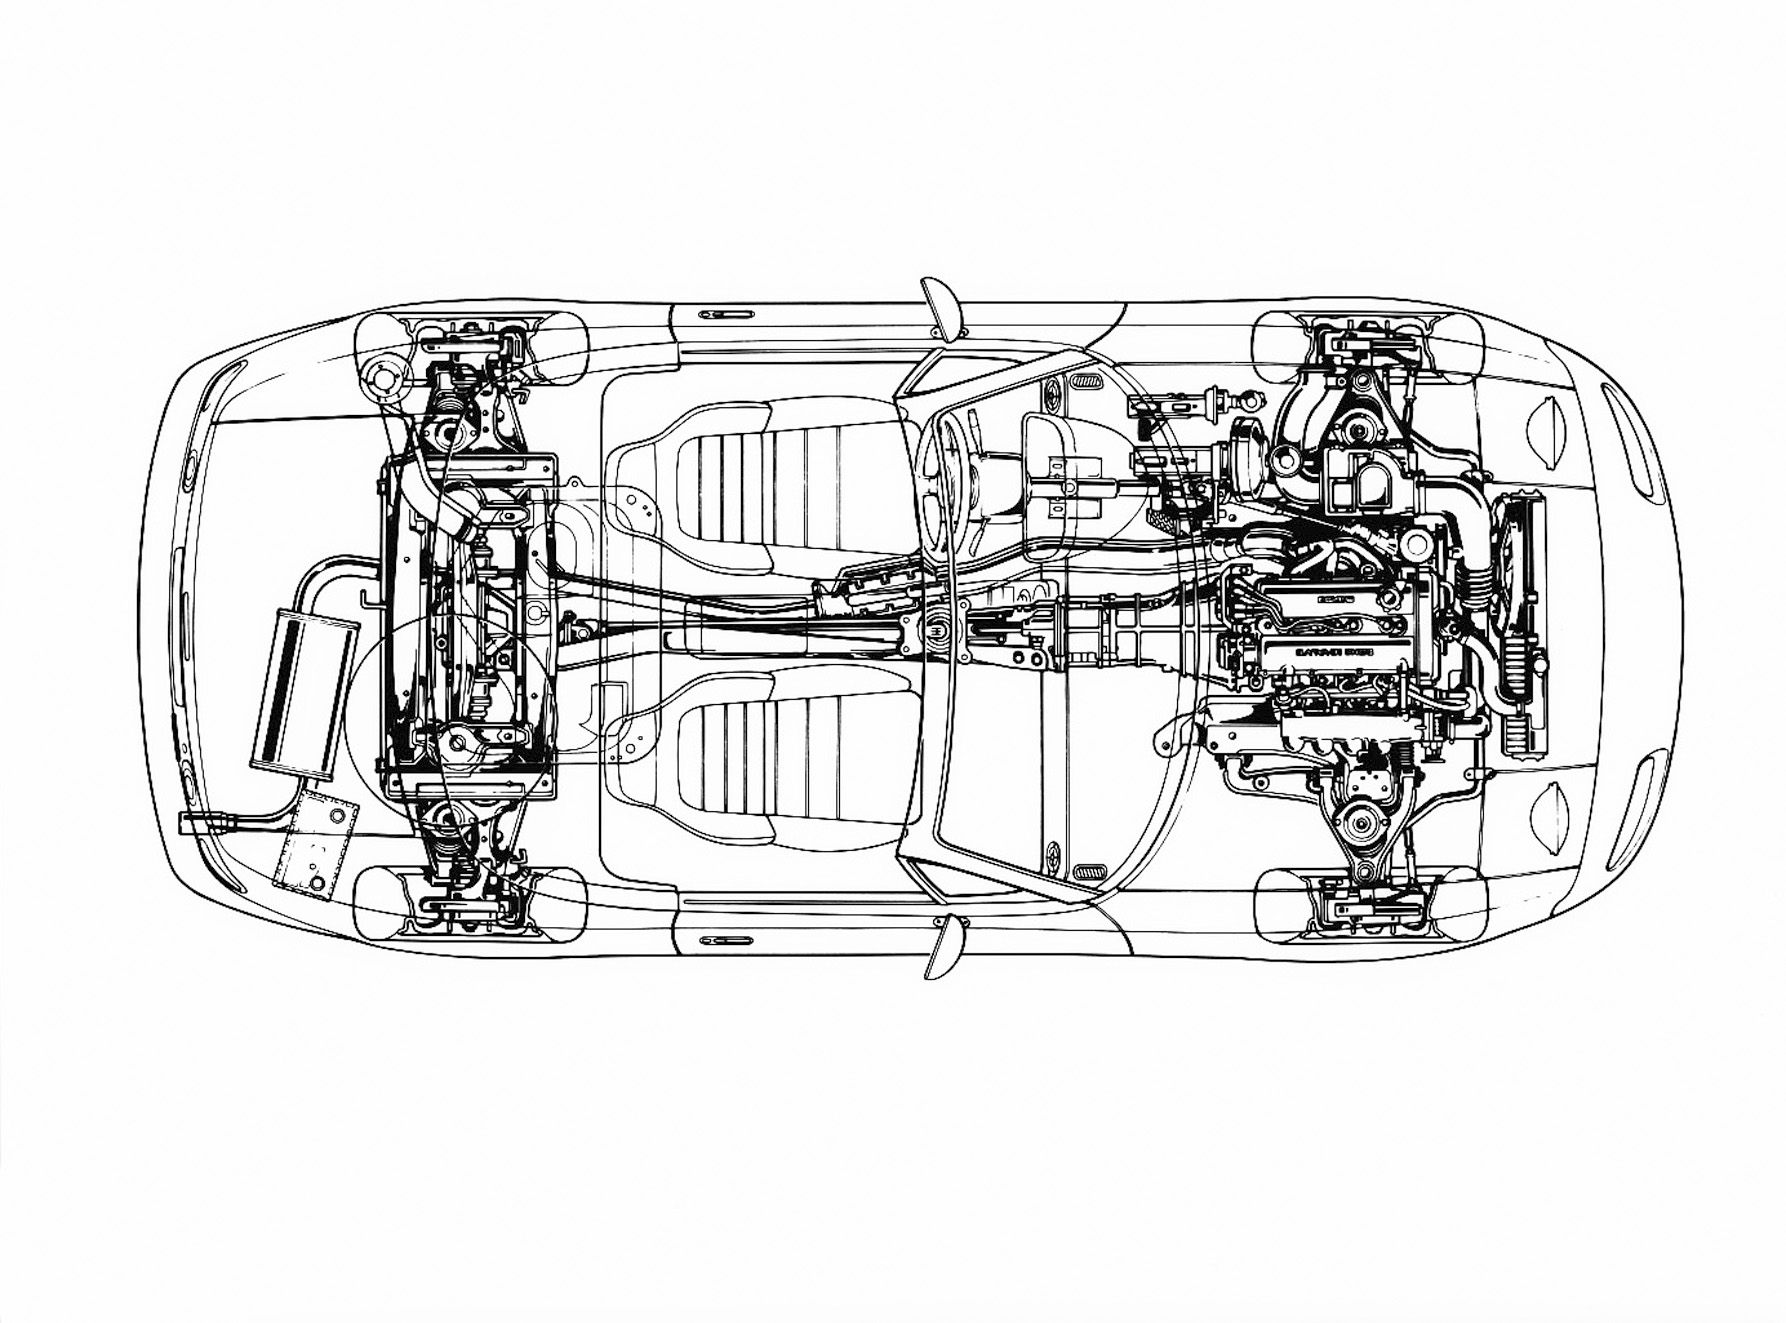 1990 mazda rx 7 engine diagram the unlikely american origin of the mazda miata hagerty media  american origin of the mazda miata